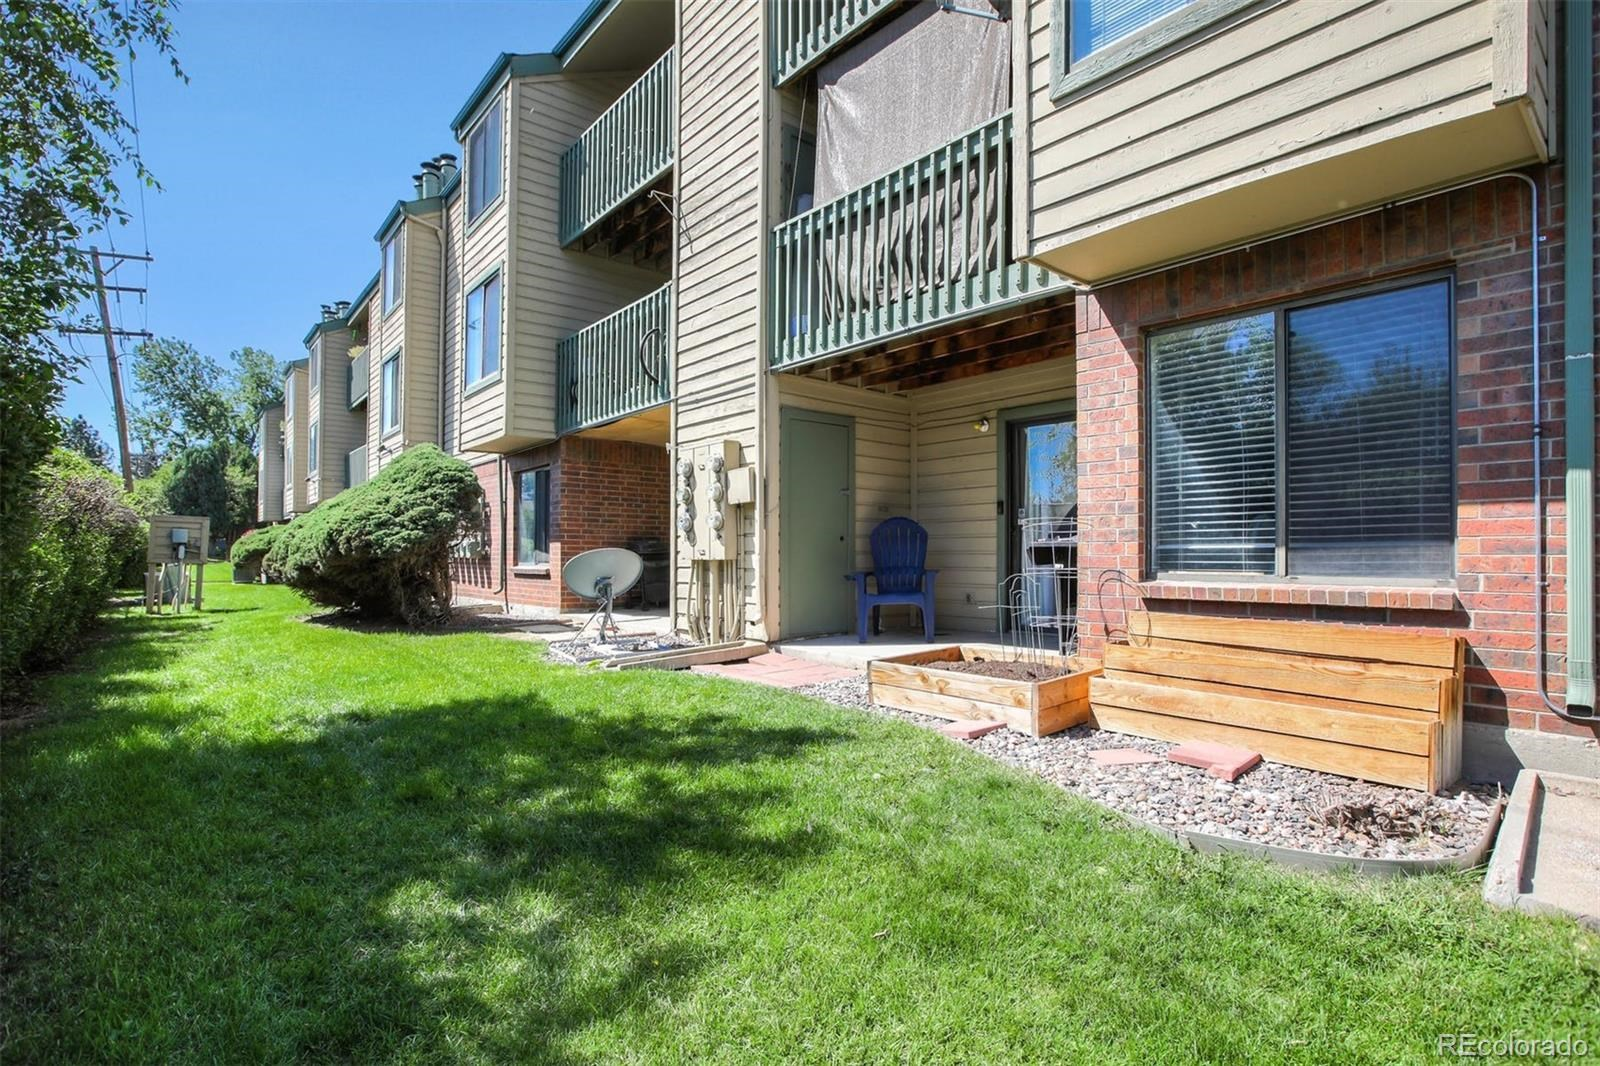 MLS# 2672185 - 23 - 3558 S Depew Street #101, Lakewood, CO 80235